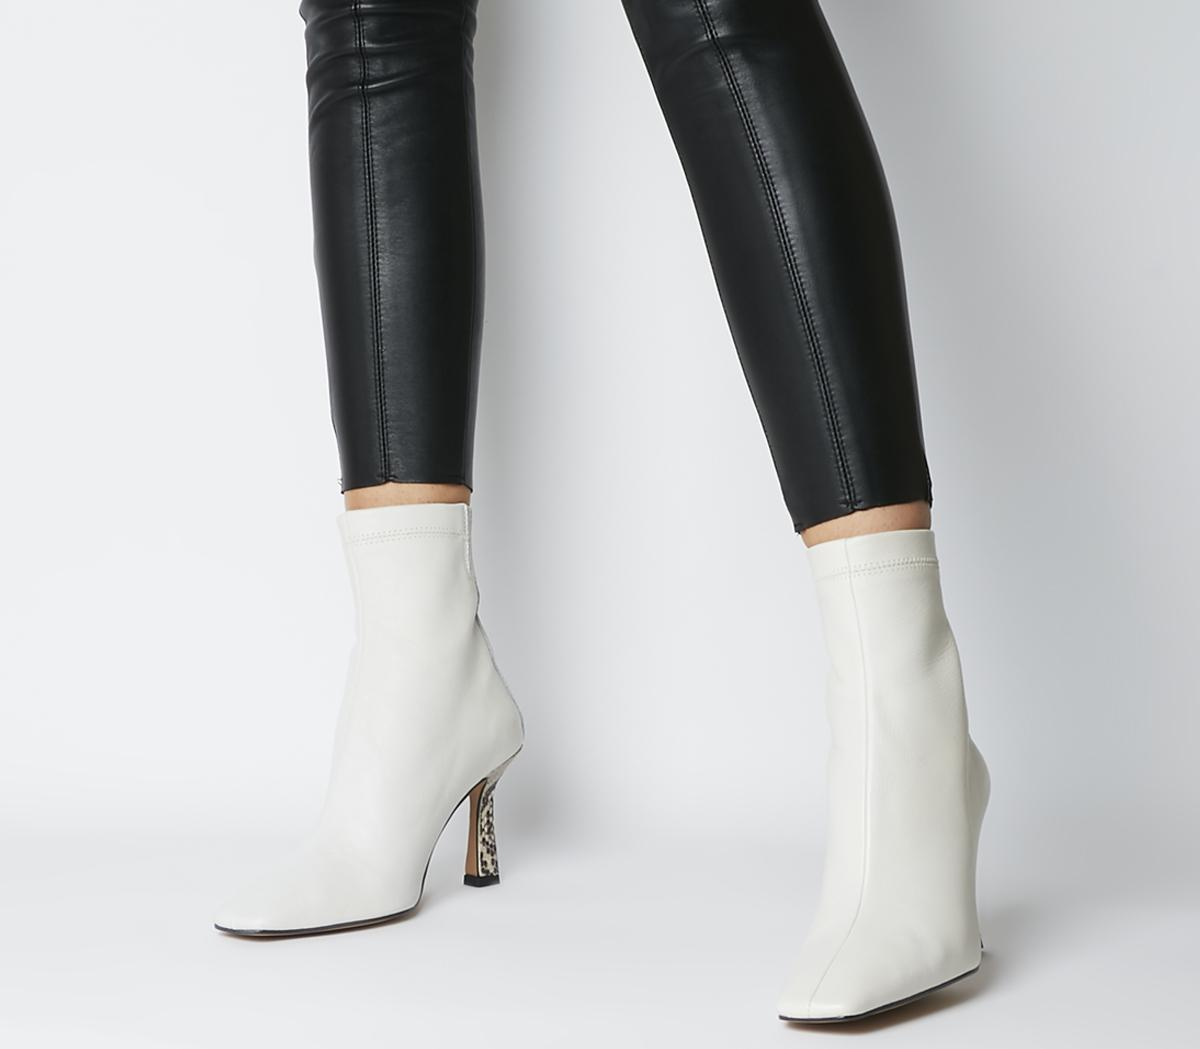 White Leather Feature Heel - Ankle Boots